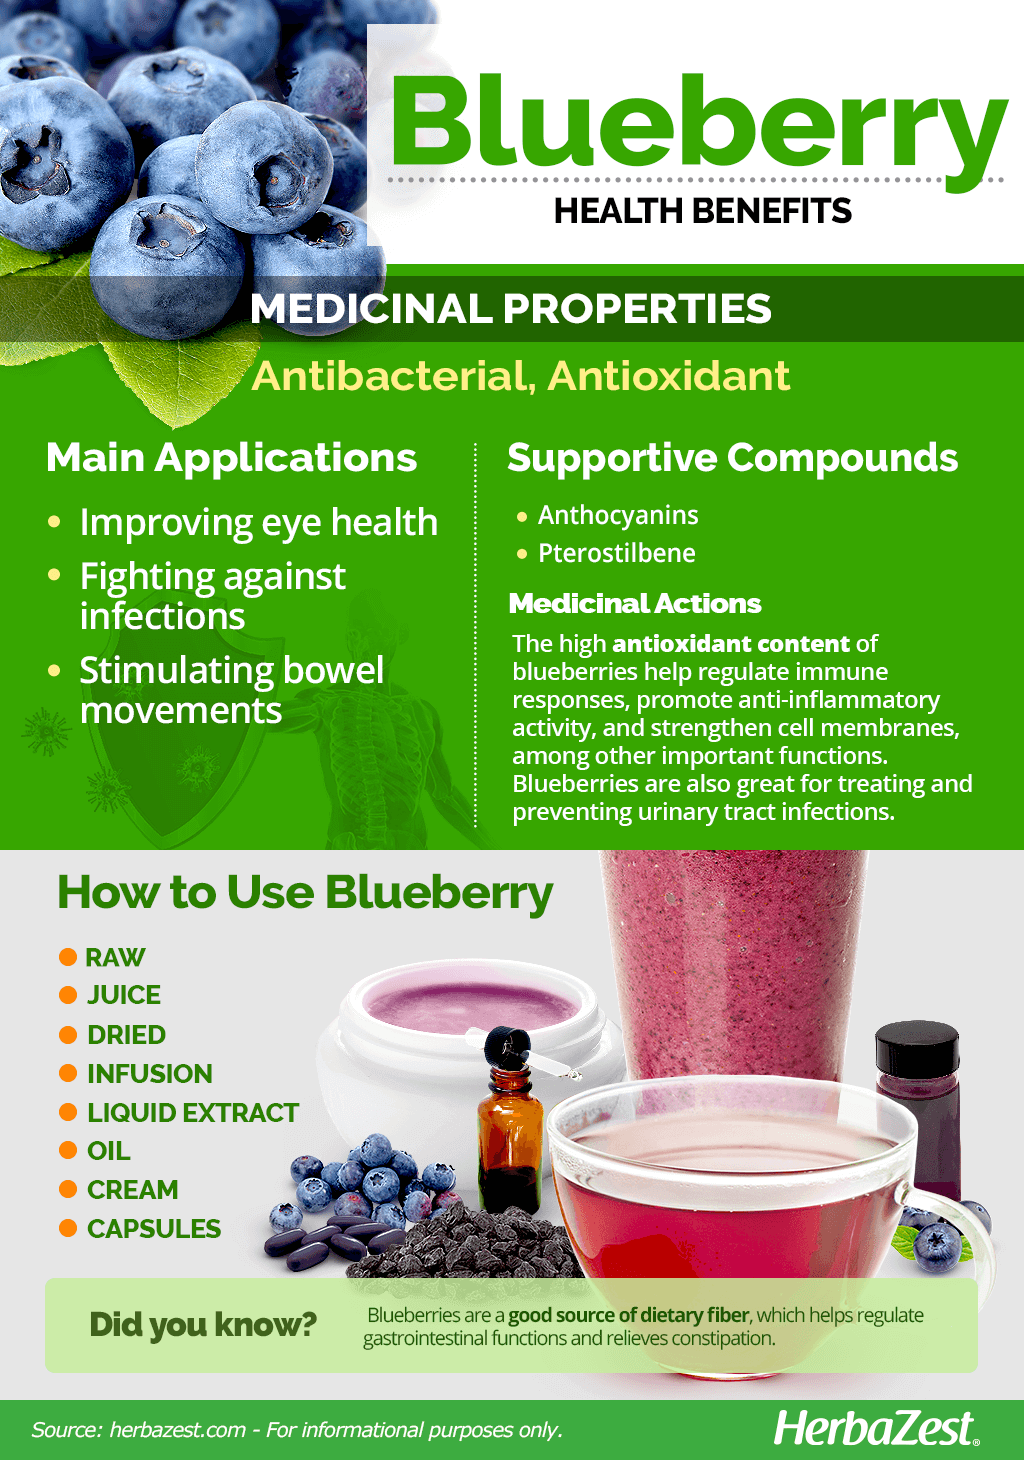 All About Blueberry